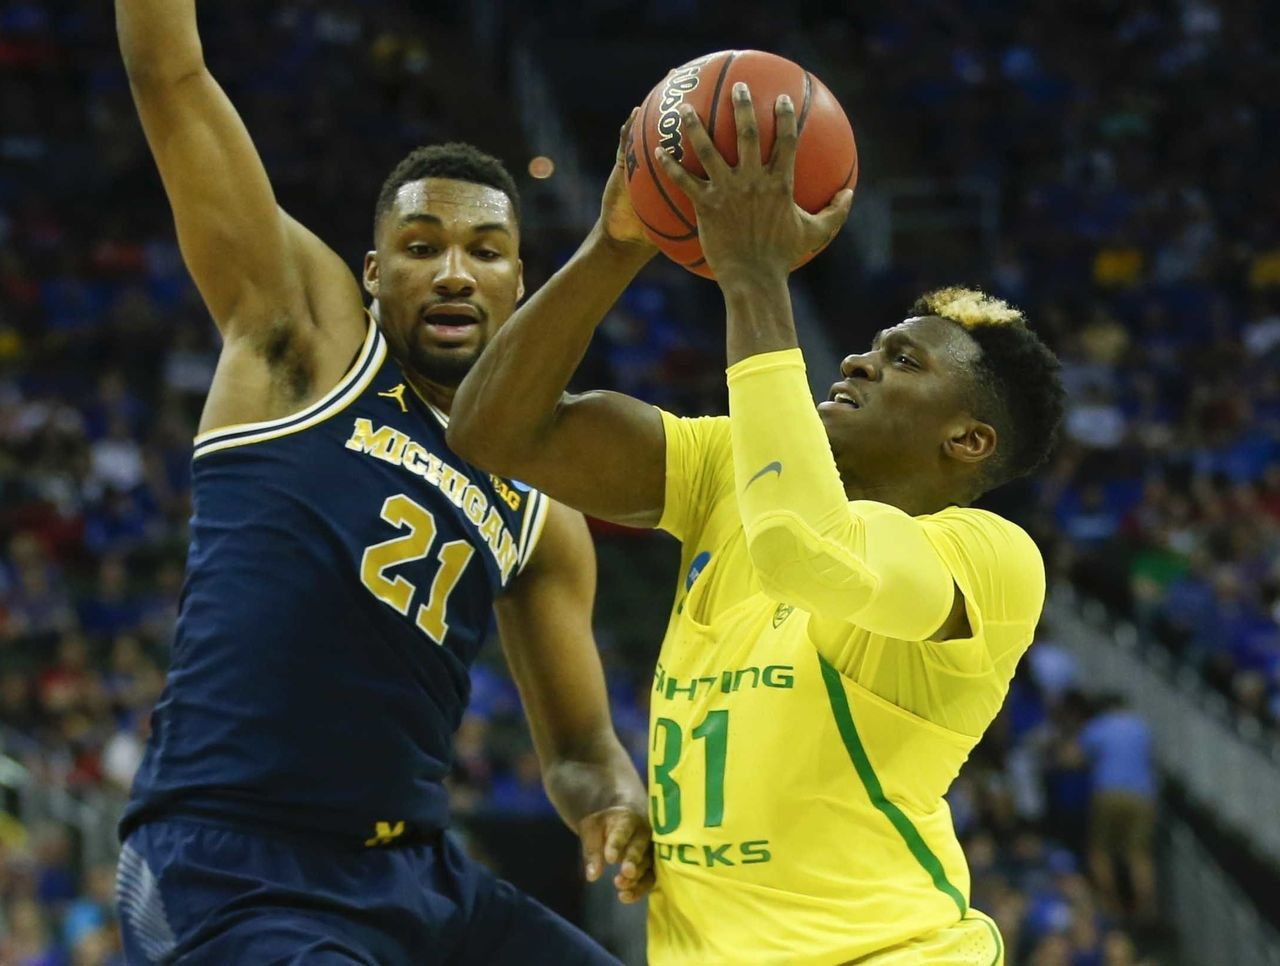 Cropped 2017 03 24t004409z 130451497 nocid rtrmadp 3 ncaa basketball ncaa tournament midwest regional oregon vs michigan